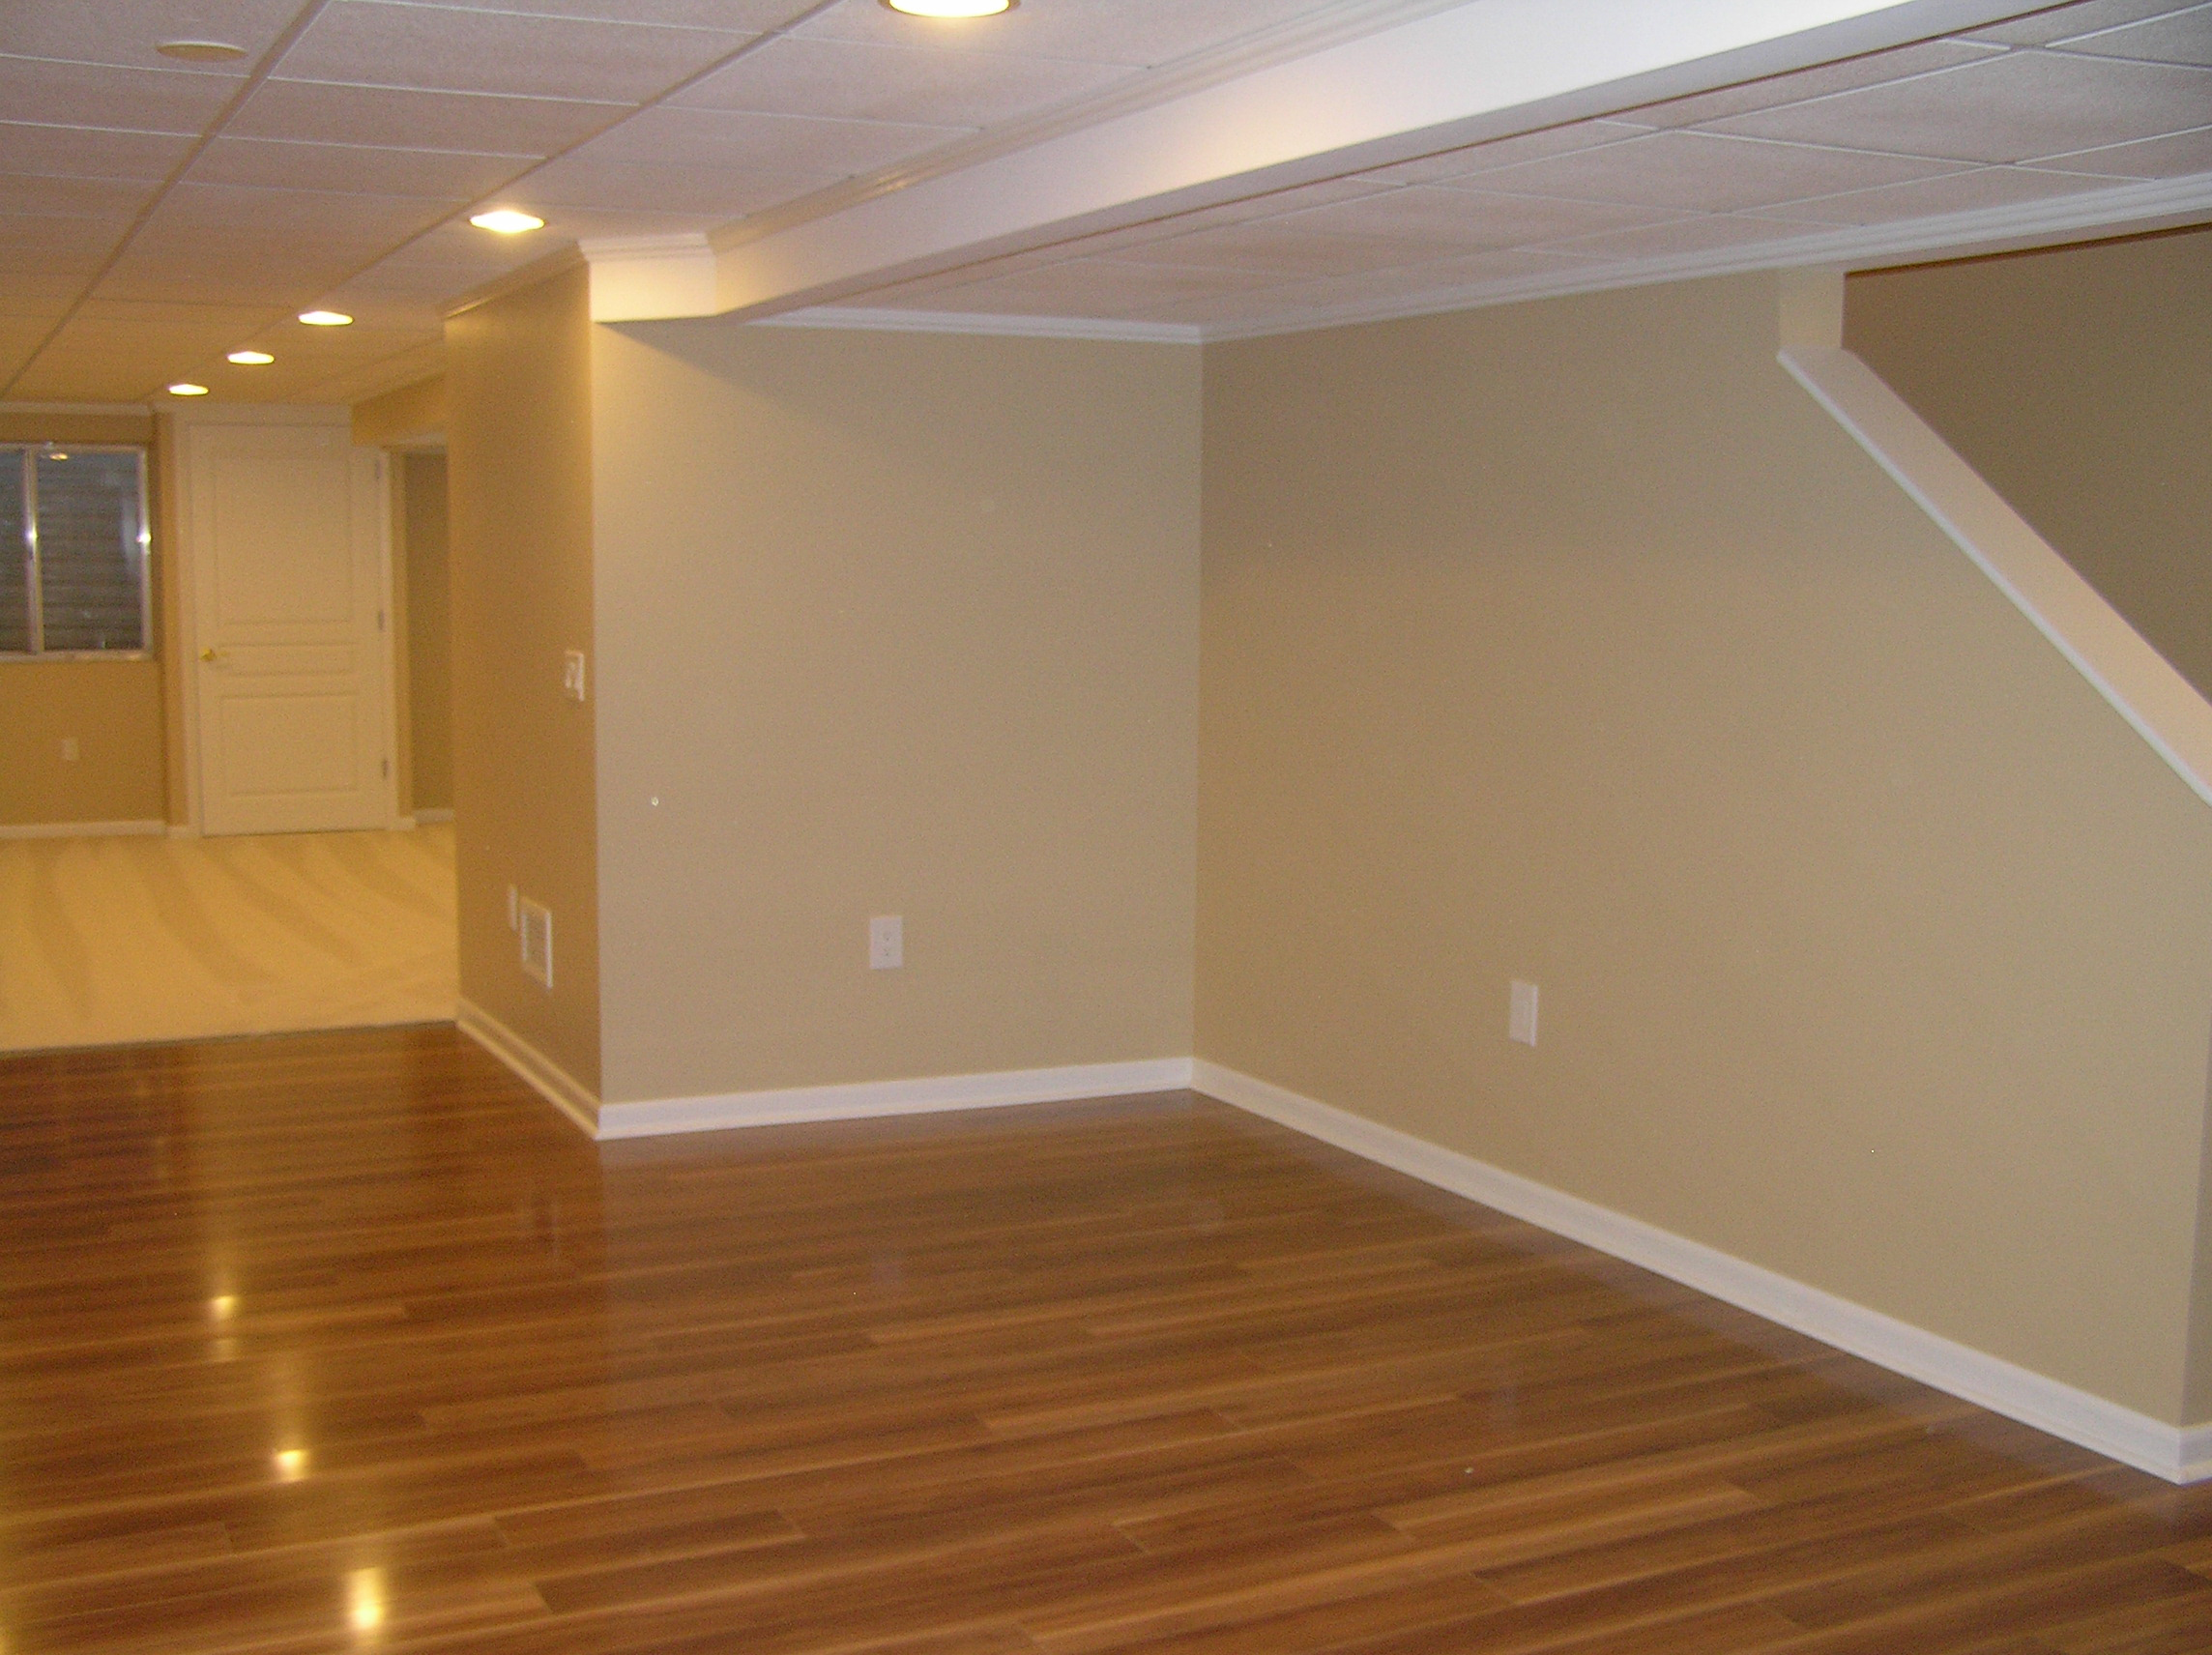 Finished Basement Wall Panels : Basement finishing in naperville aurora joliet illinois